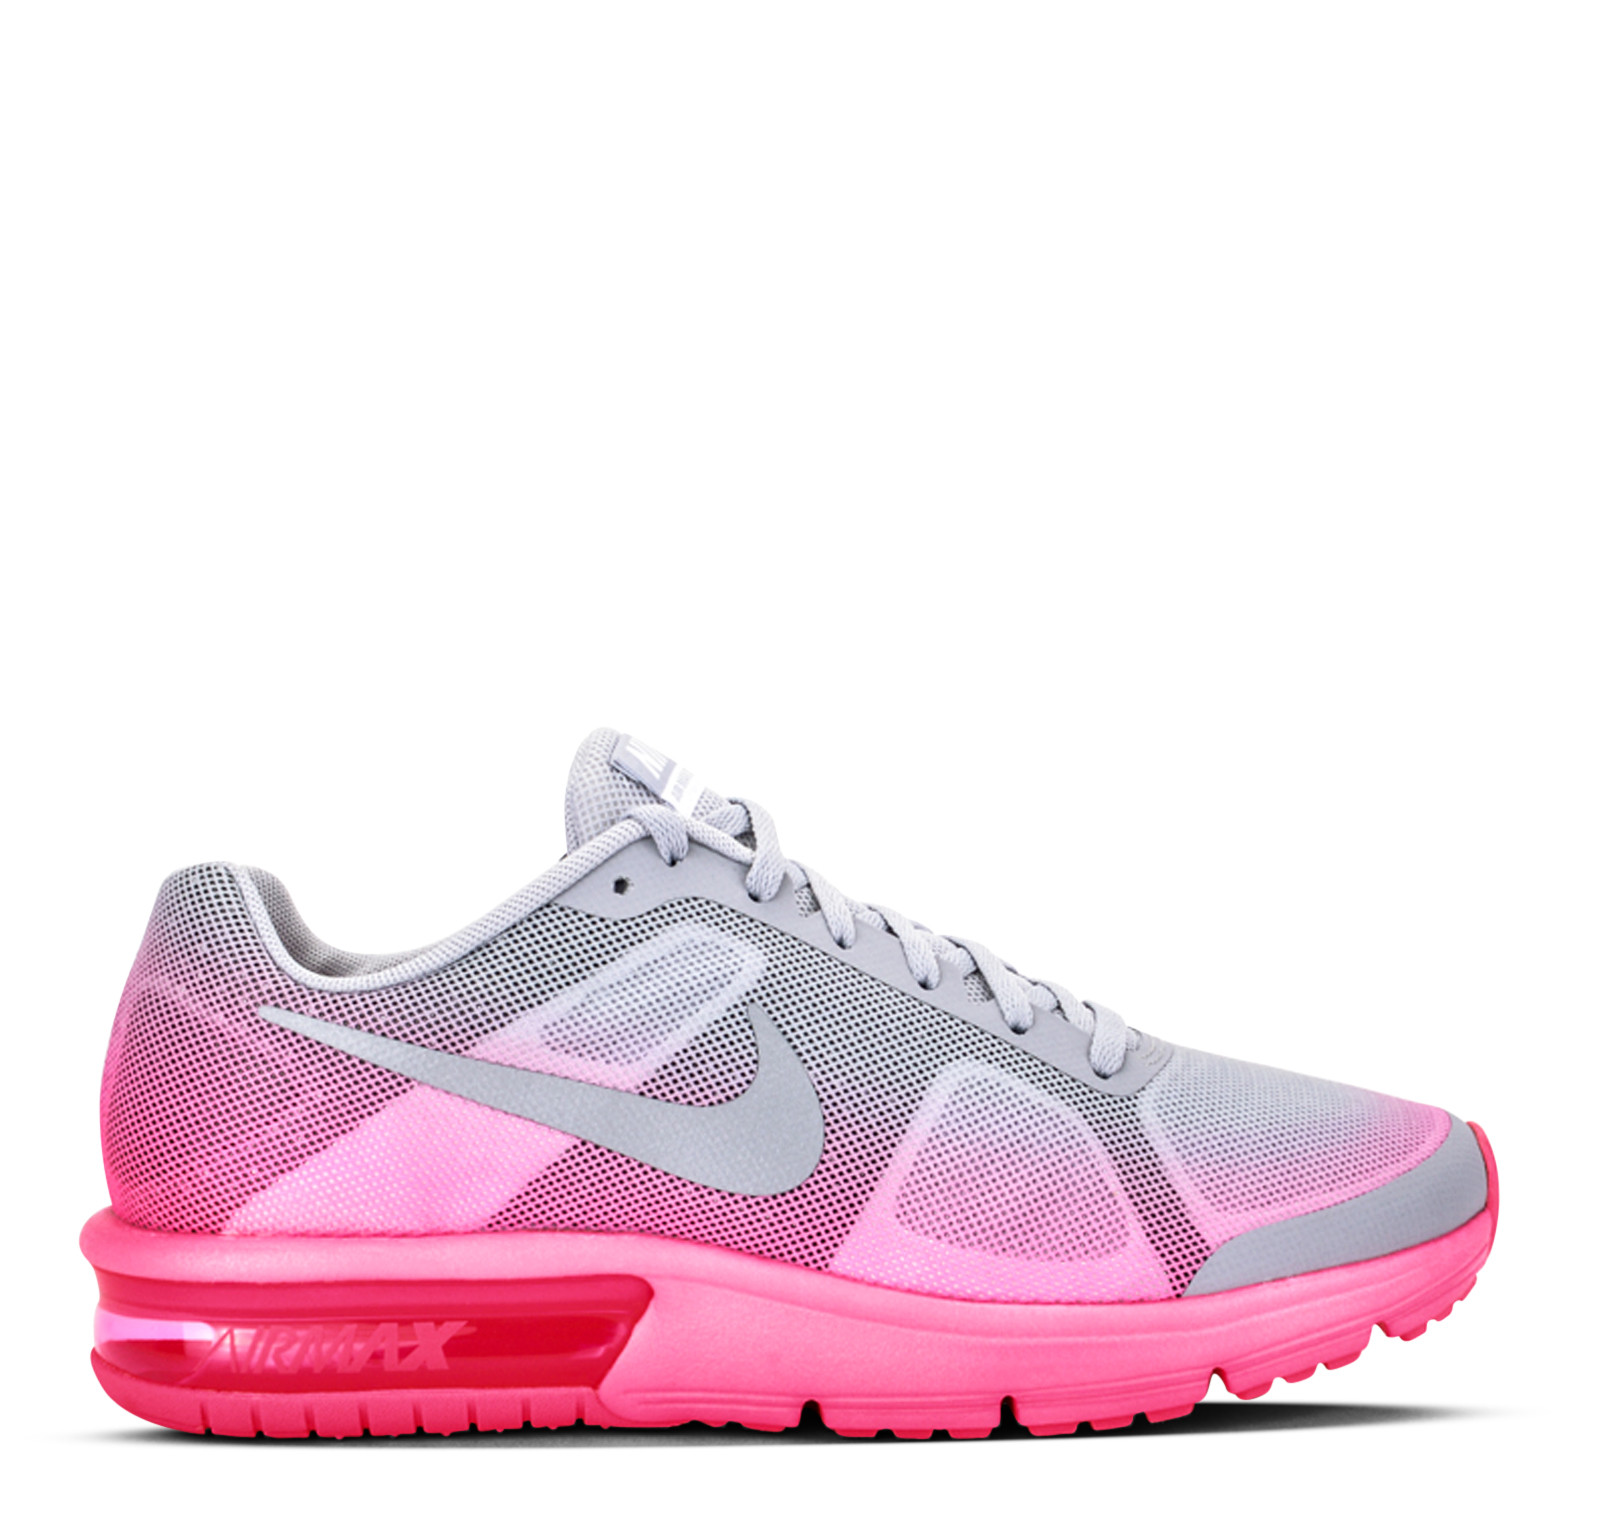 Nike NIKE AIR MAX SEQUENT Girls sneakers (GS) 724984 002